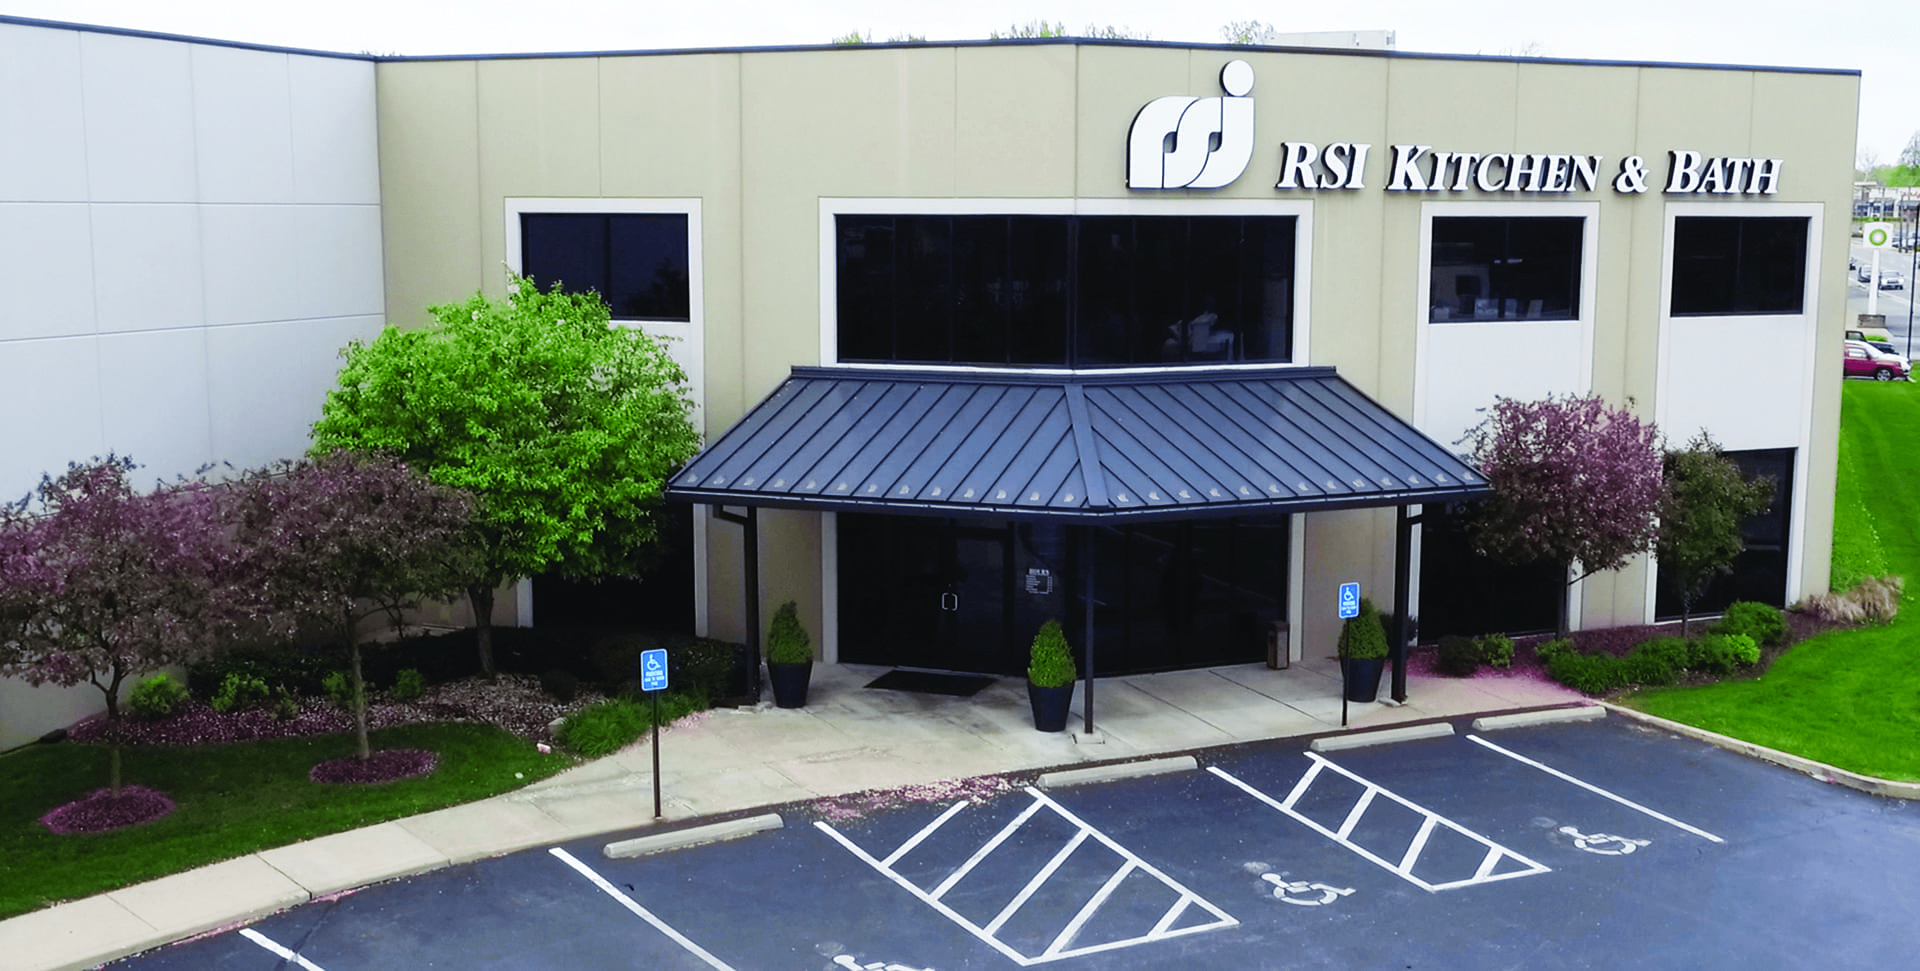 RSI Rockhill Location